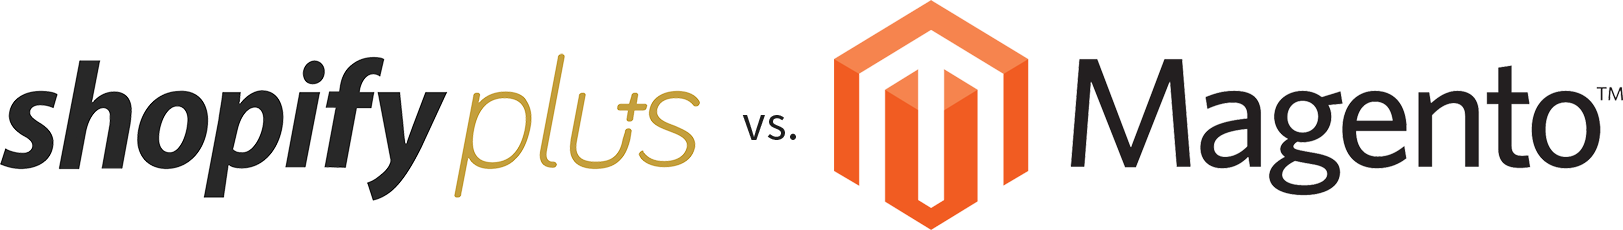 Shopify Plus vs. Magento